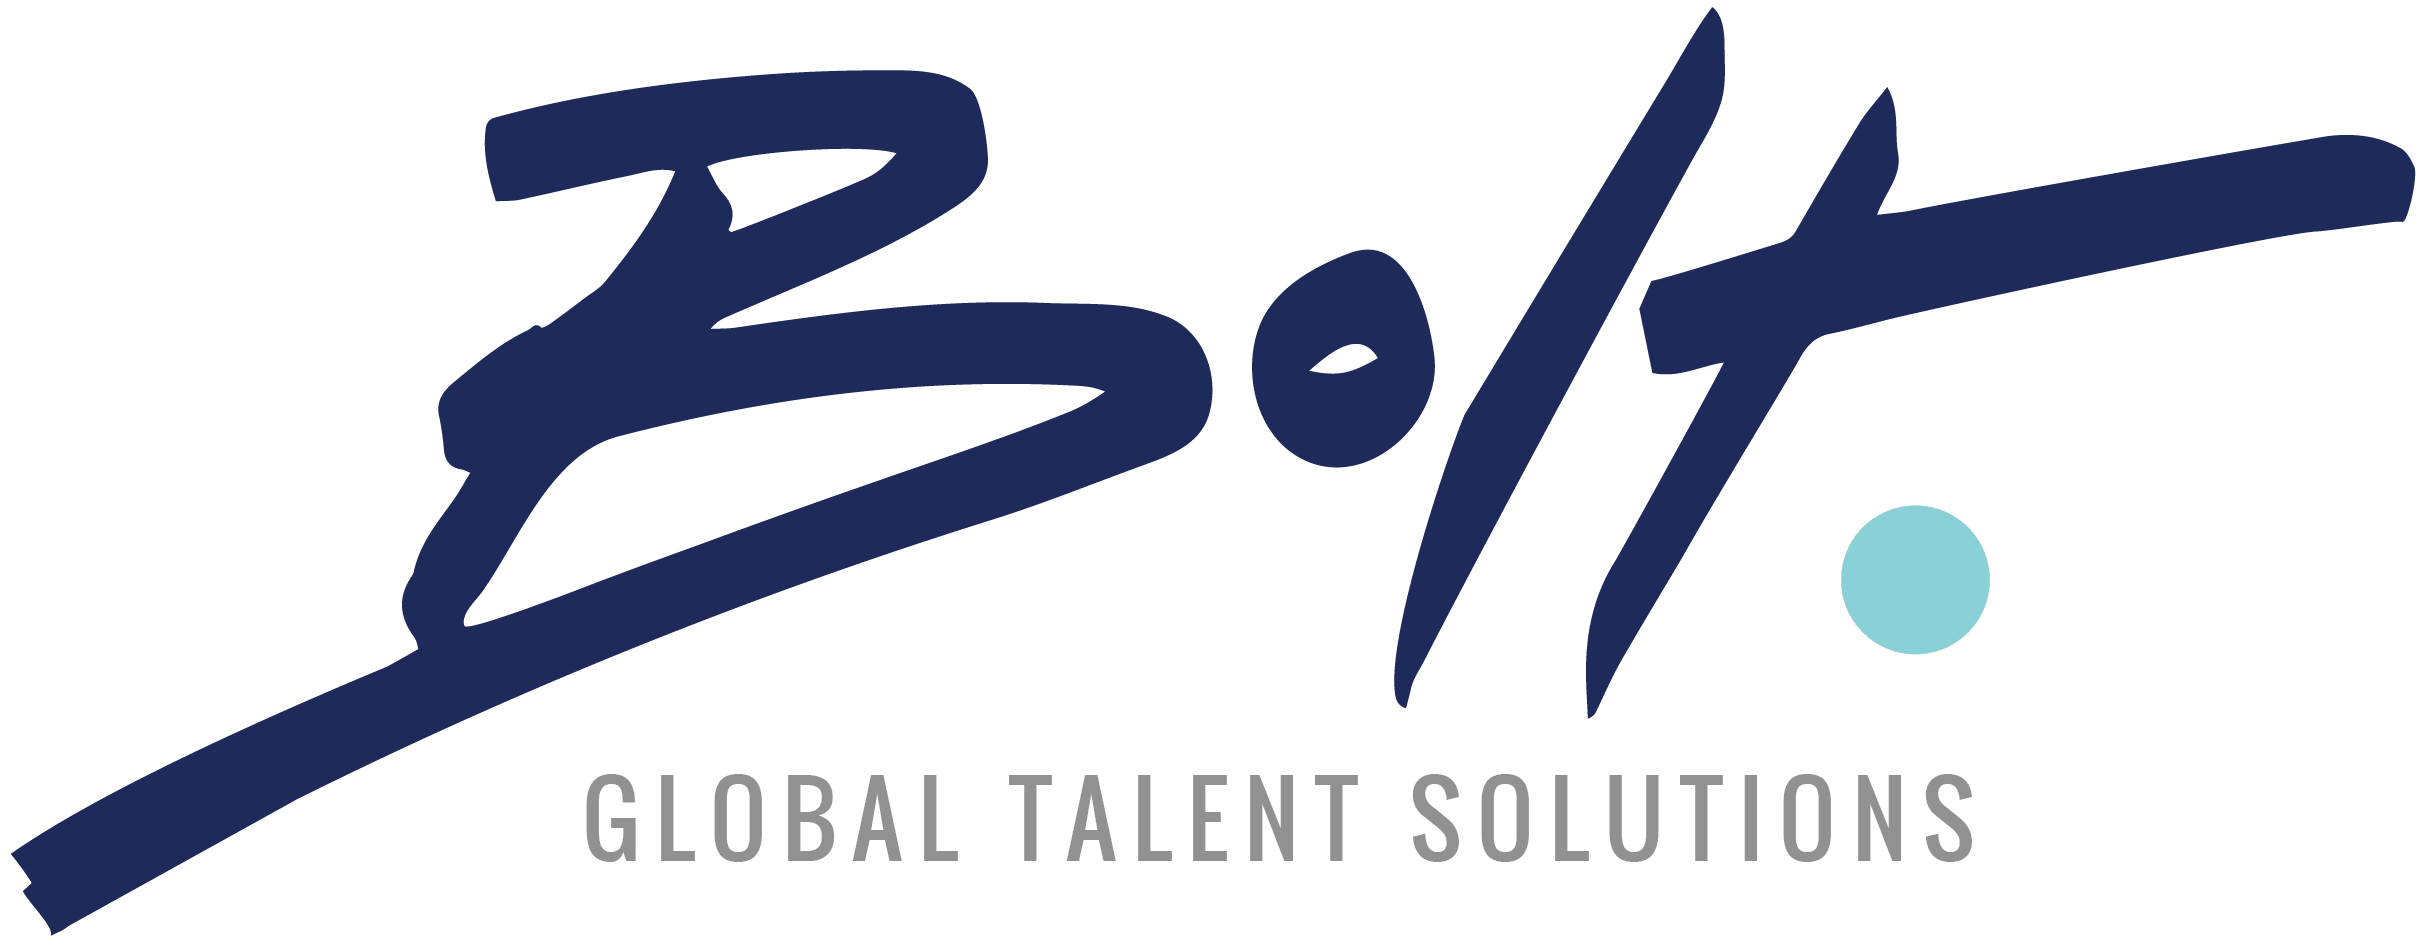 Bolt Talent Solutions